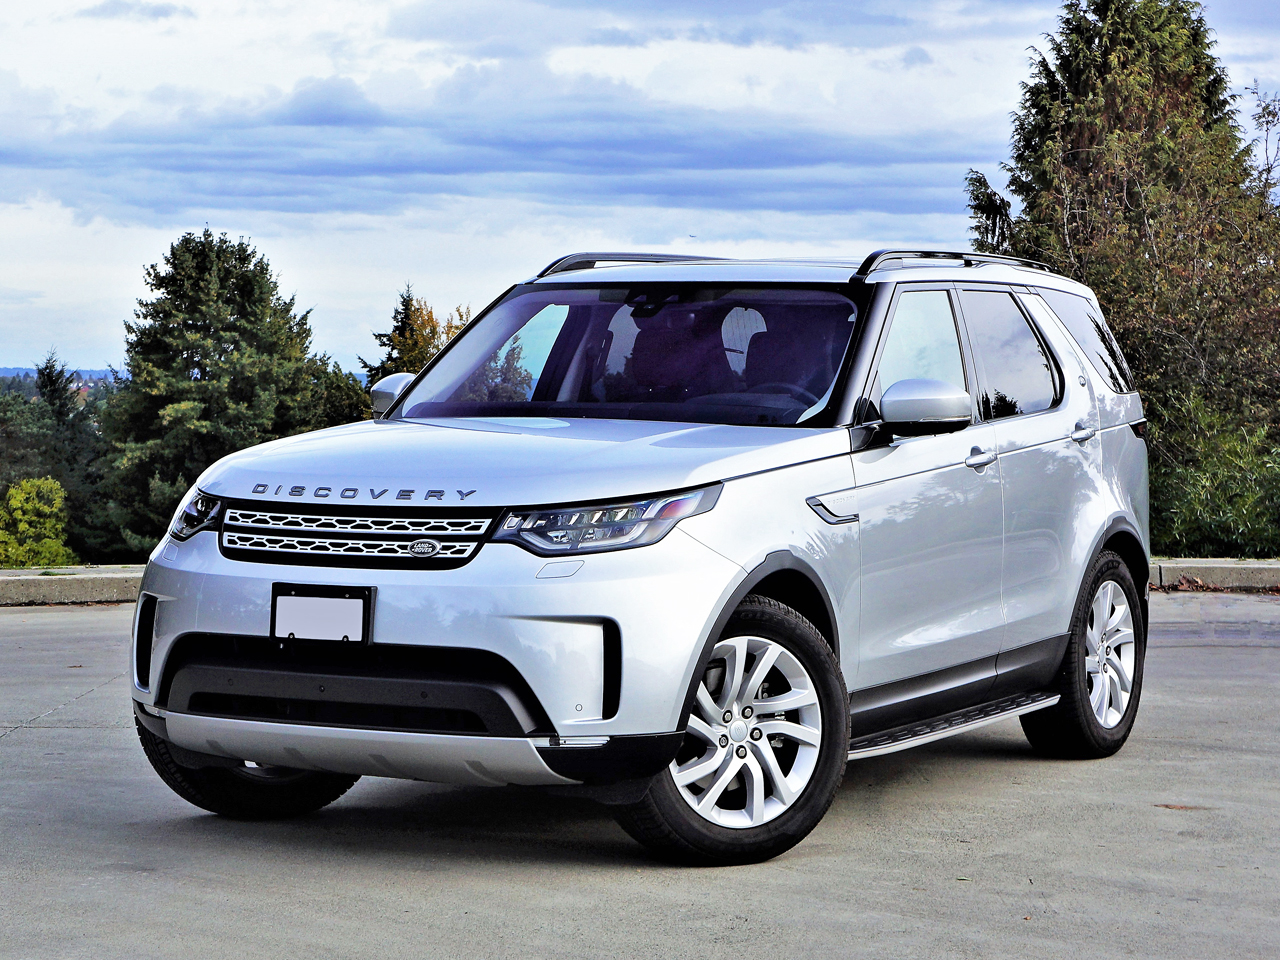 2017 land rover discovery hse luxury td6 road test carcostcanada. Black Bedroom Furniture Sets. Home Design Ideas